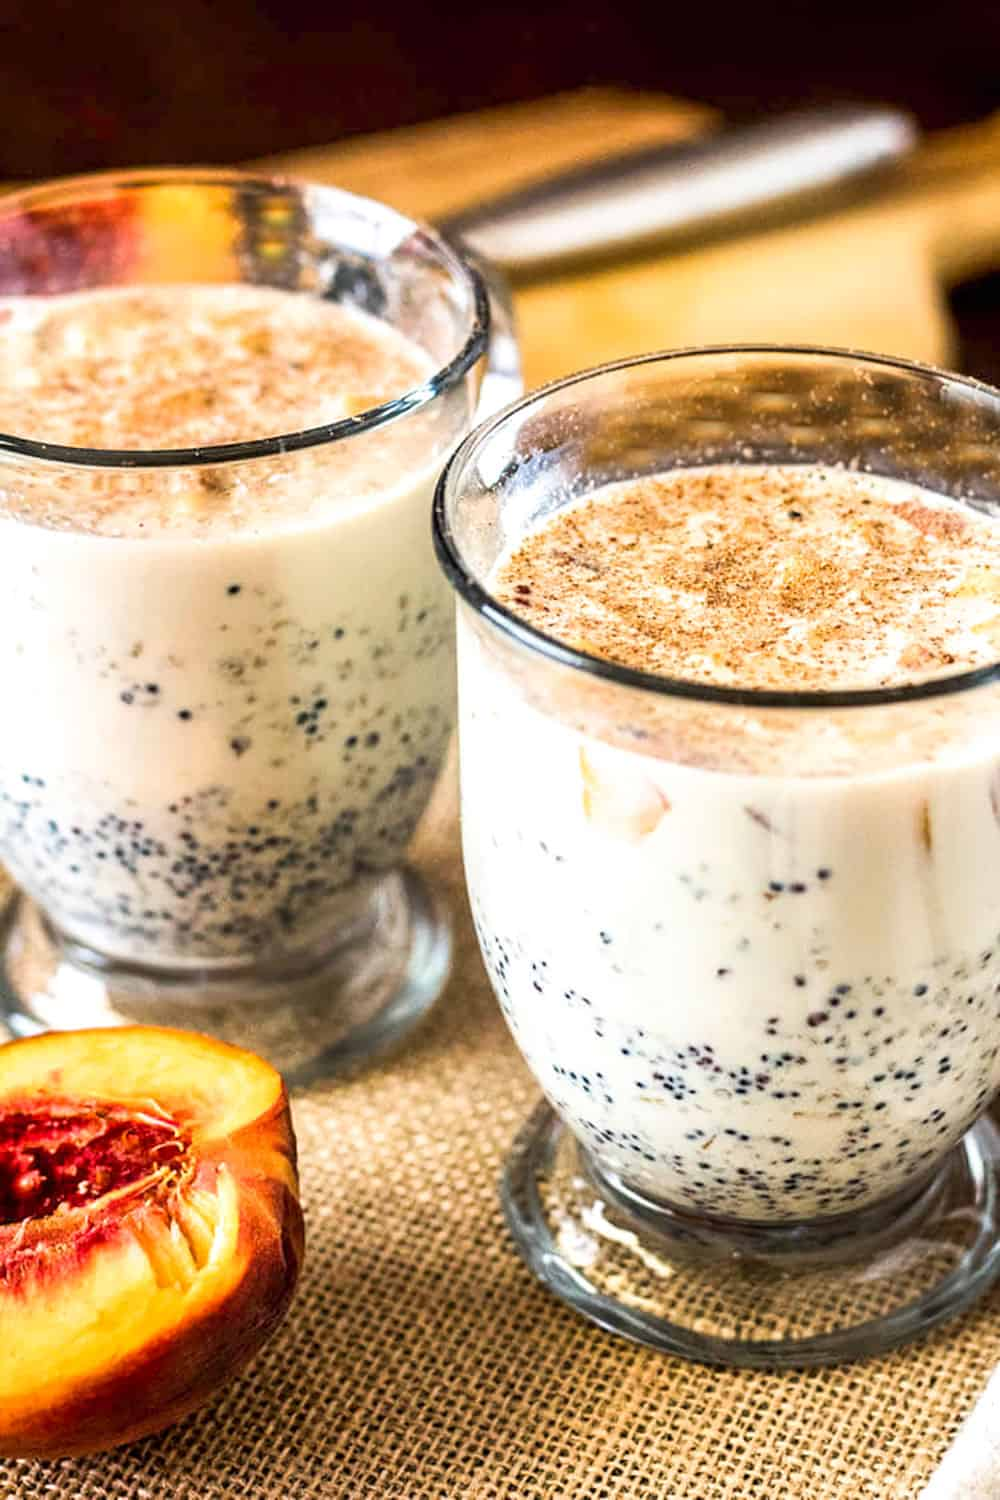 Peruvian Quinoa Porridge In Glasses